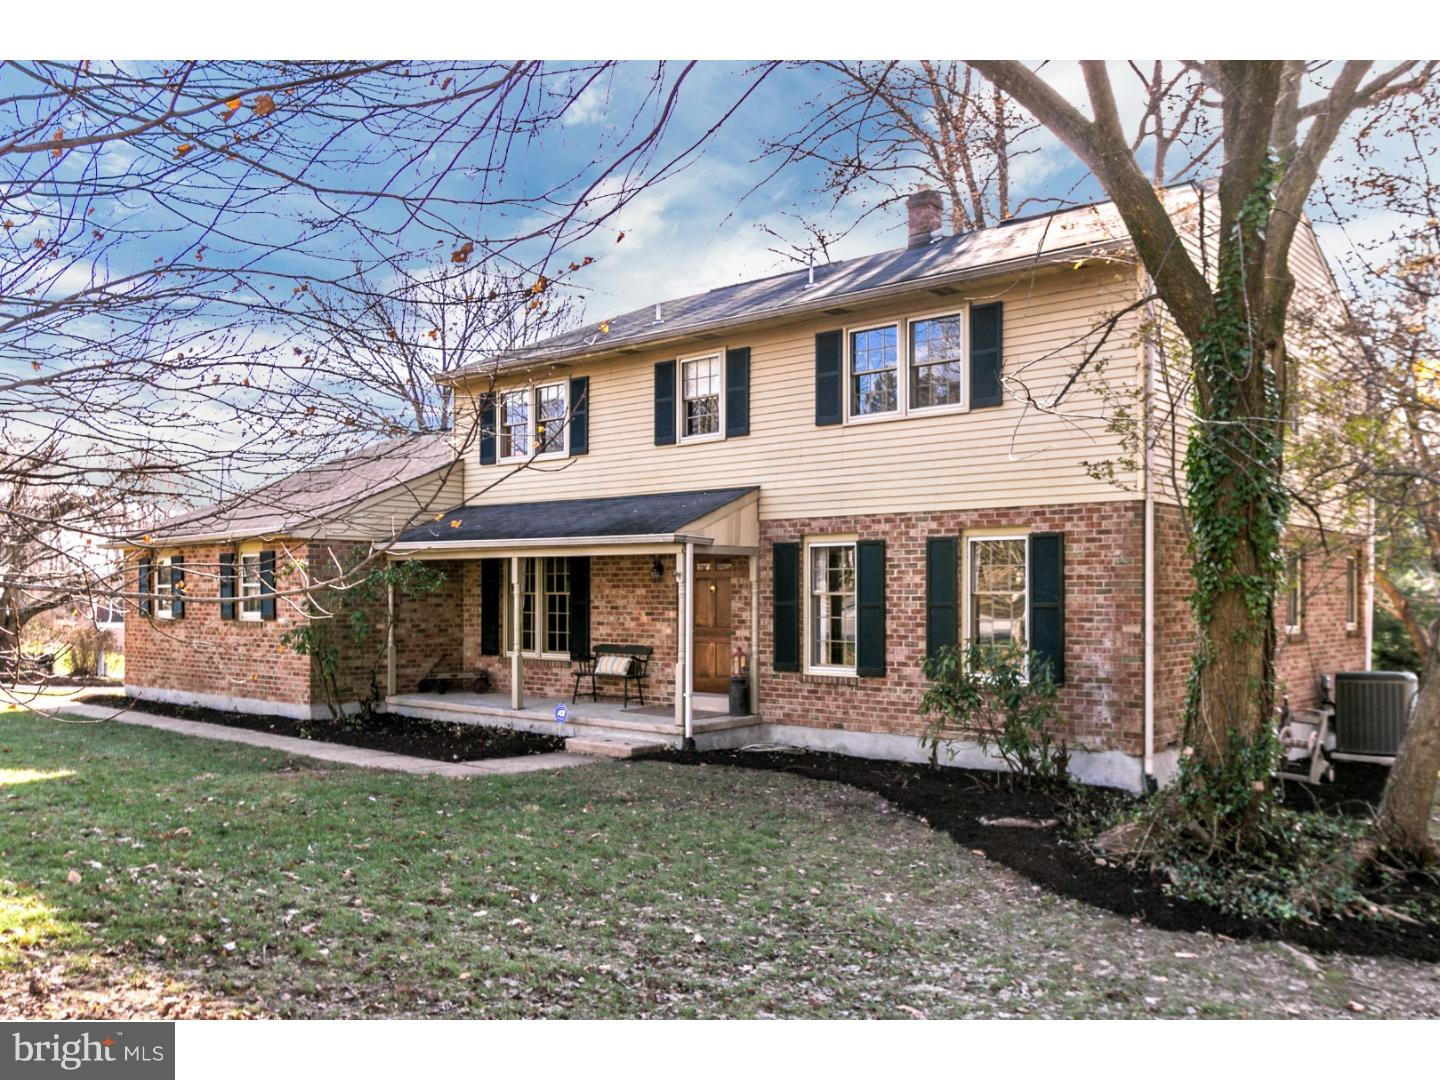 1410 WILLIAM PENN LANE, WILMINGTON, DE 19803